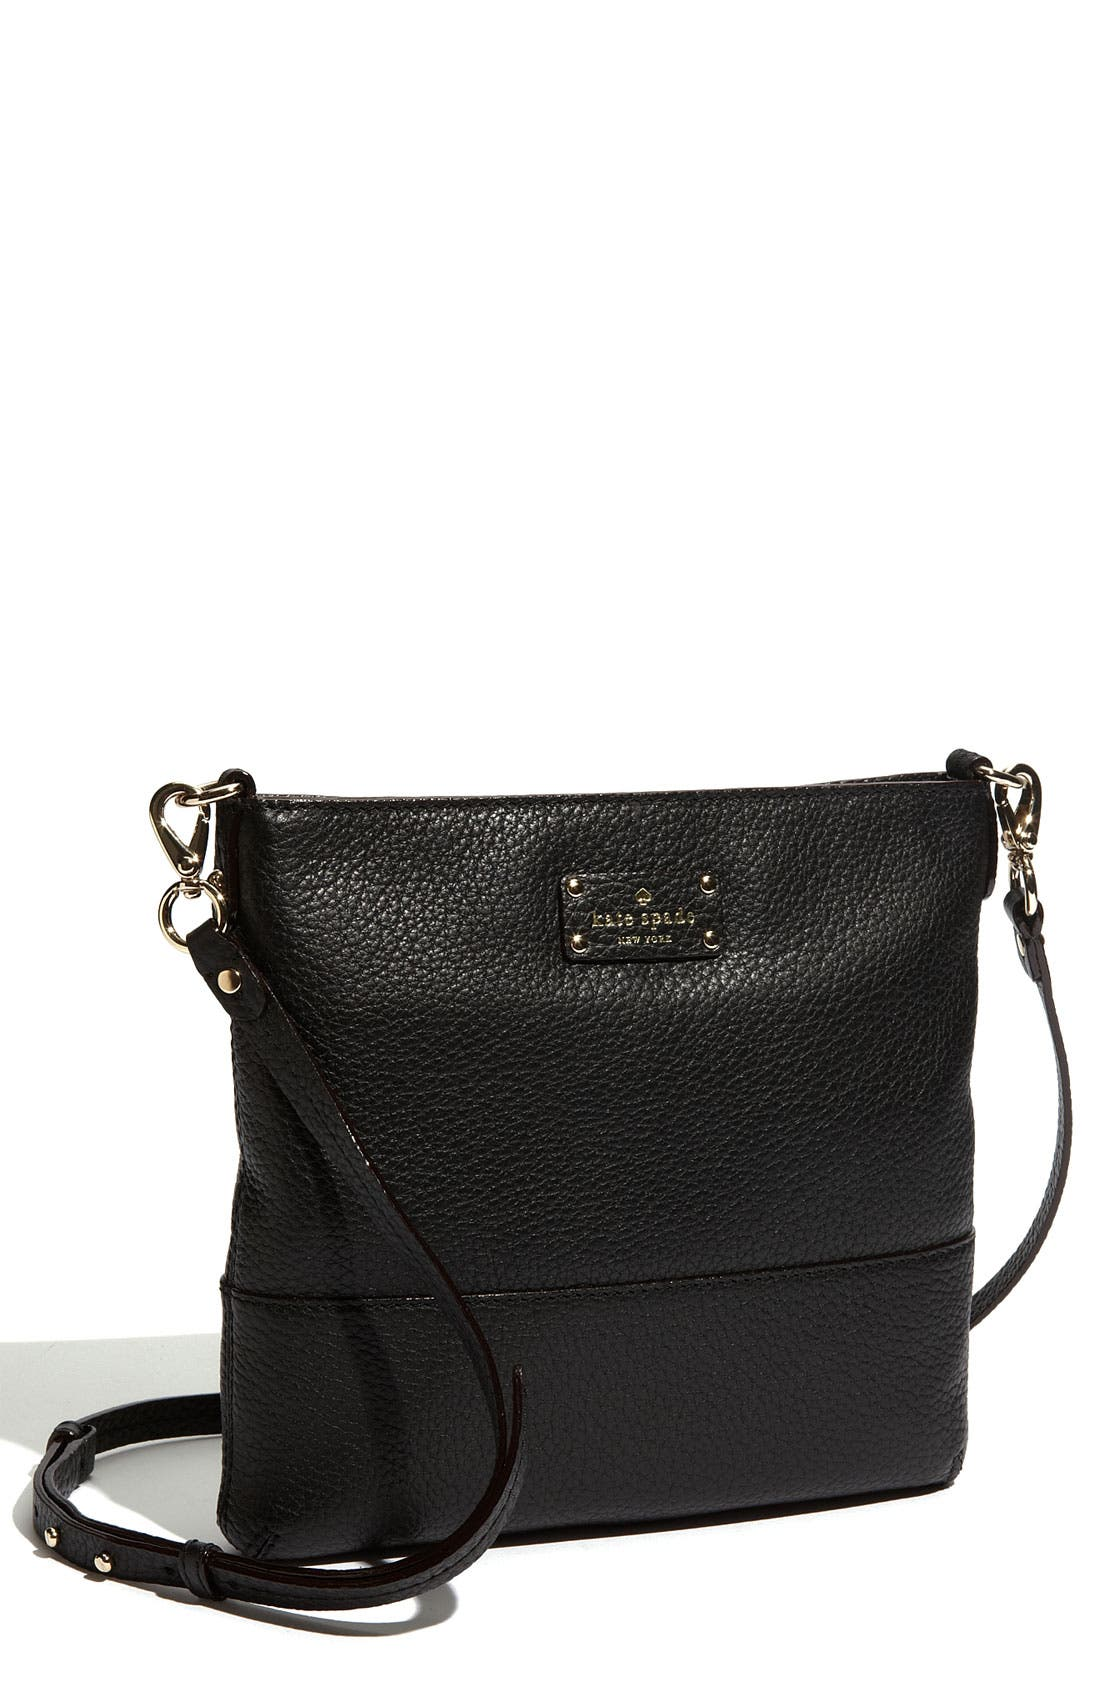 Alternate Image 1 Selected - kate spade new york 'grove court - cora' crossbody